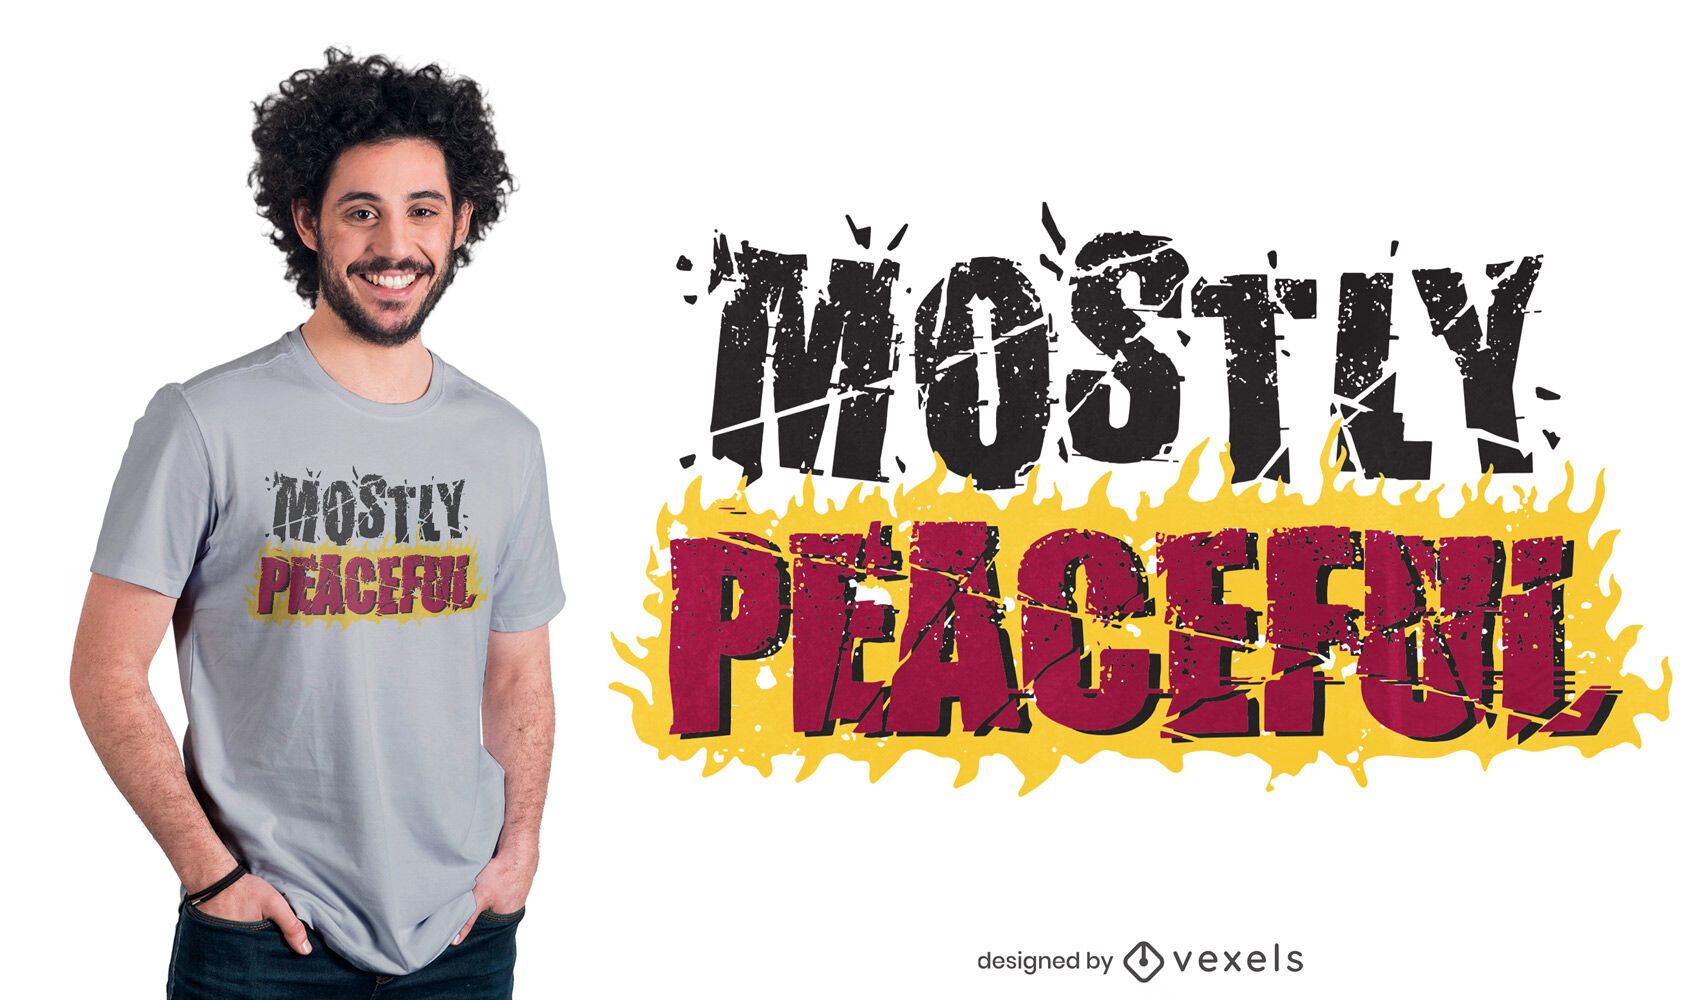 Peaceful quote on fire t-shirt design